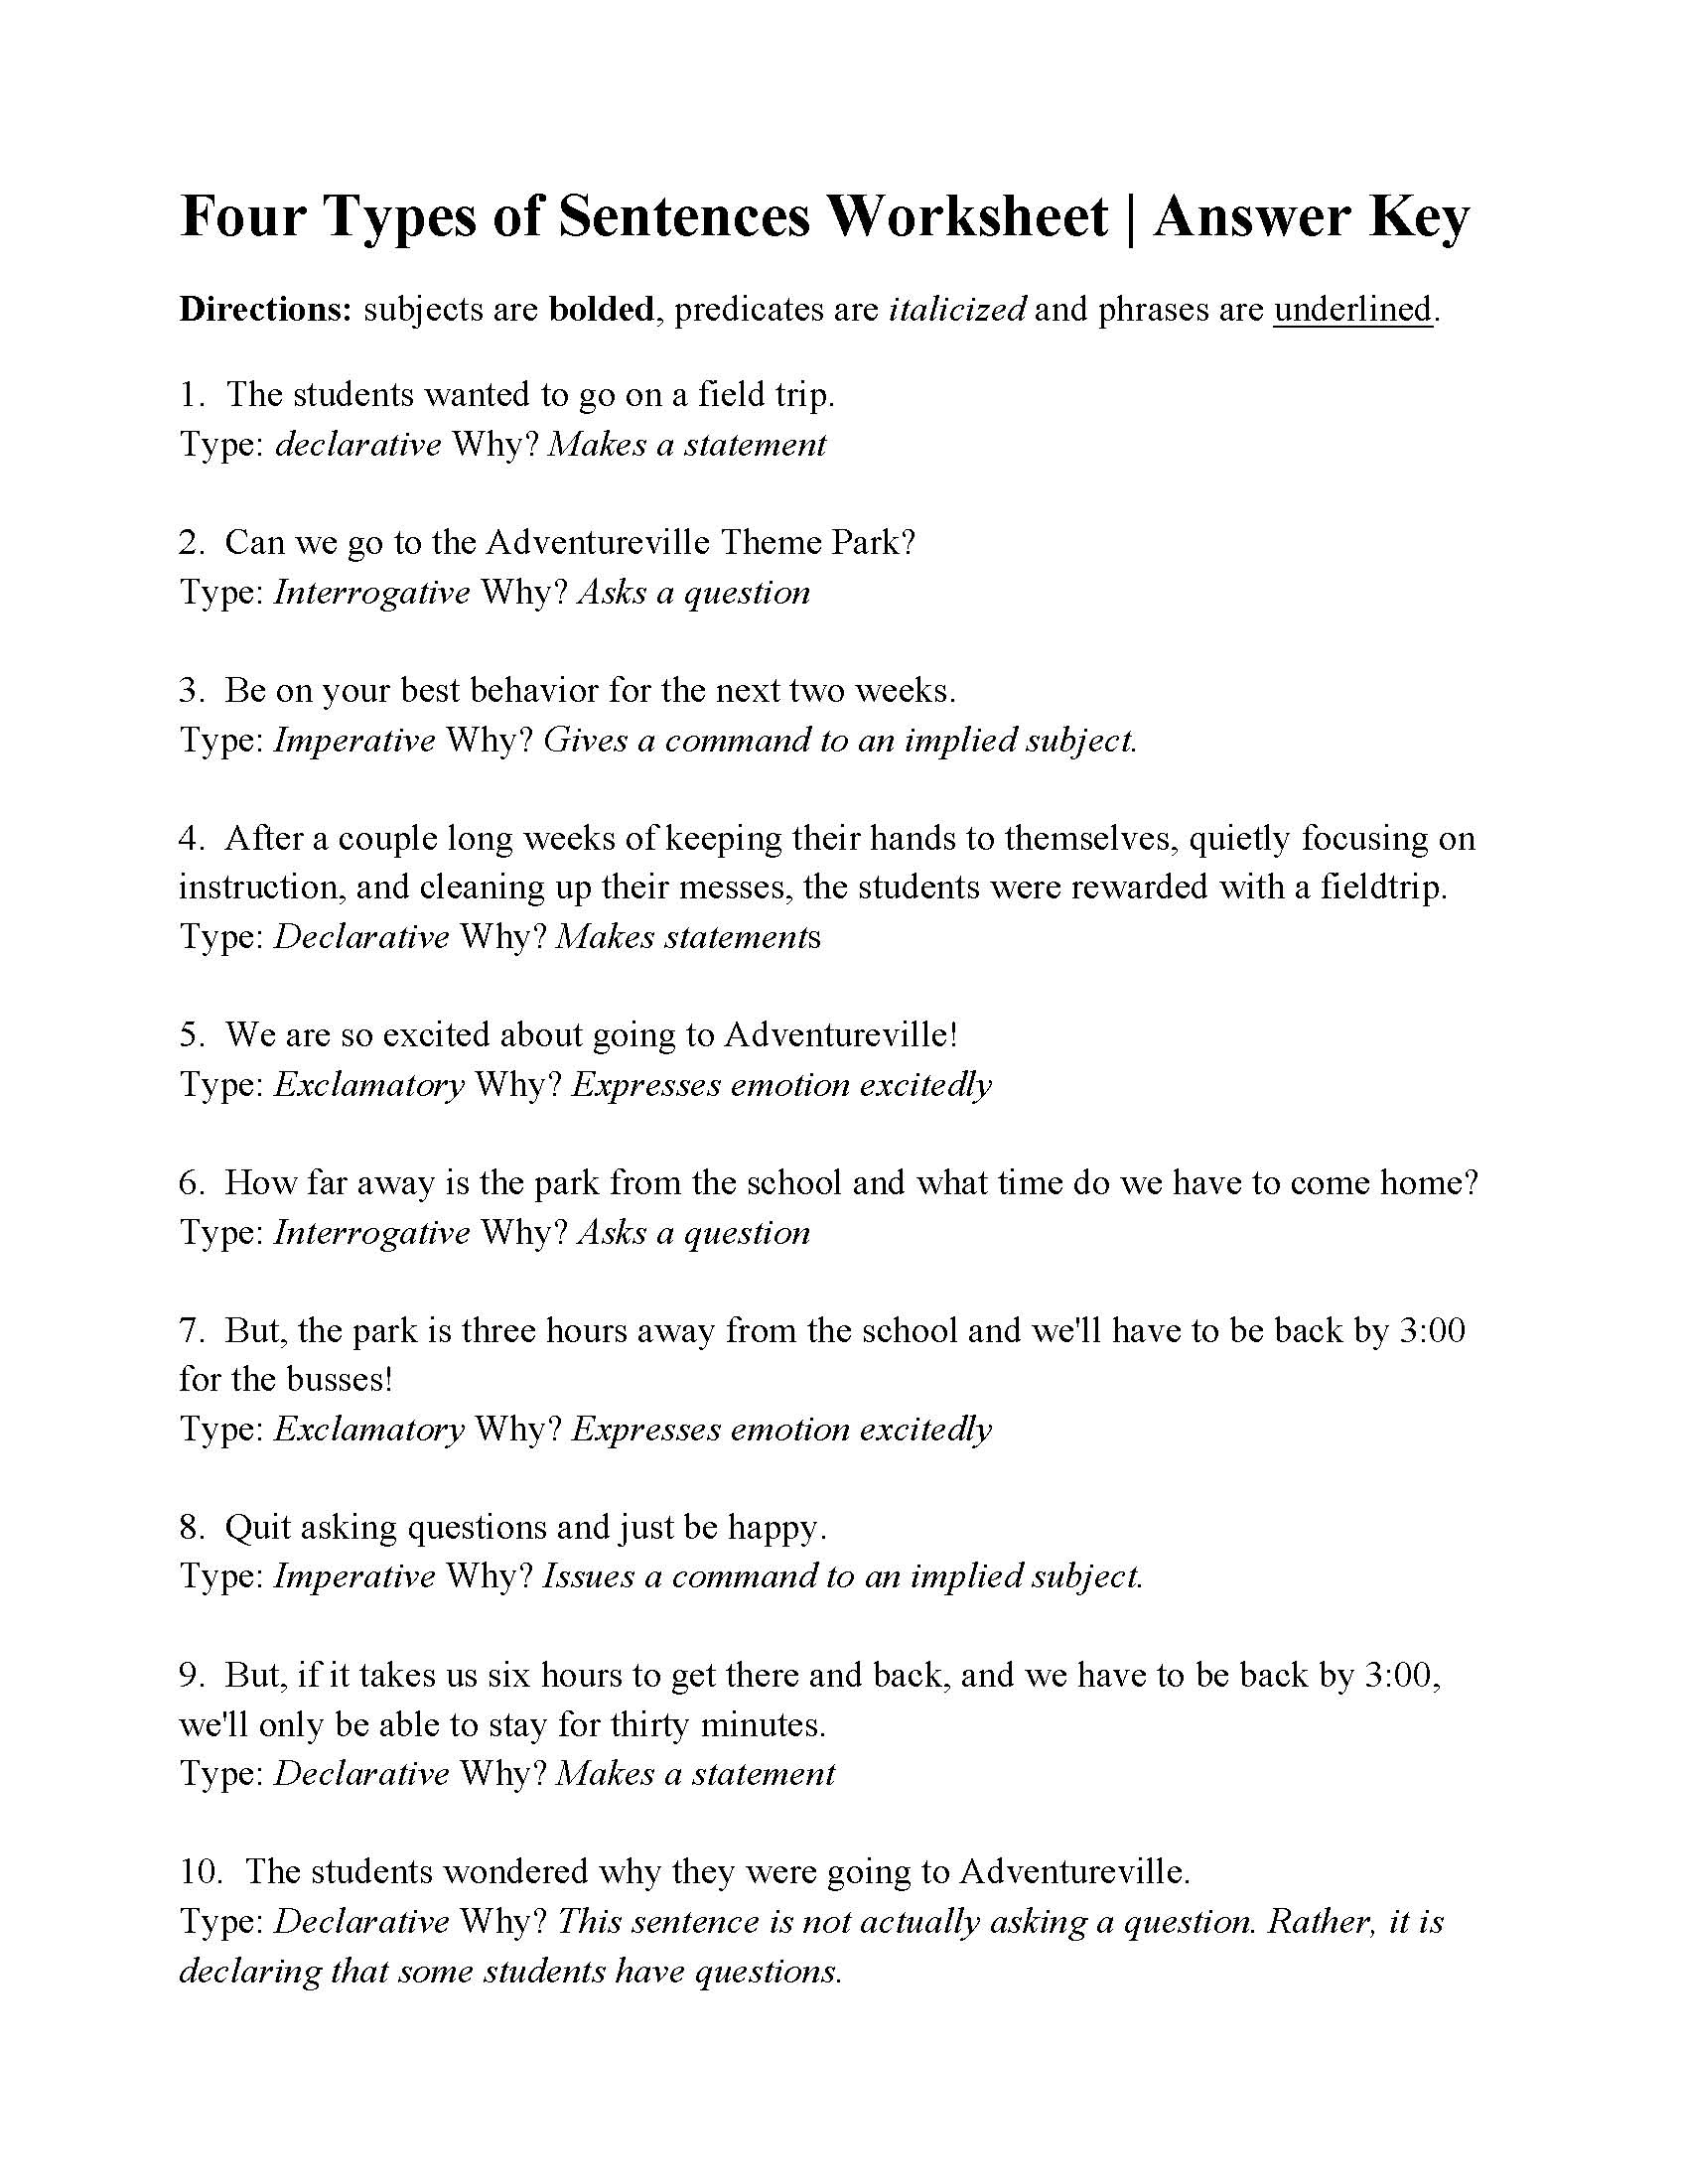 Four Types Of Sentences Worksheet | Answers | Free Printable Types Of Sentences Worksheets